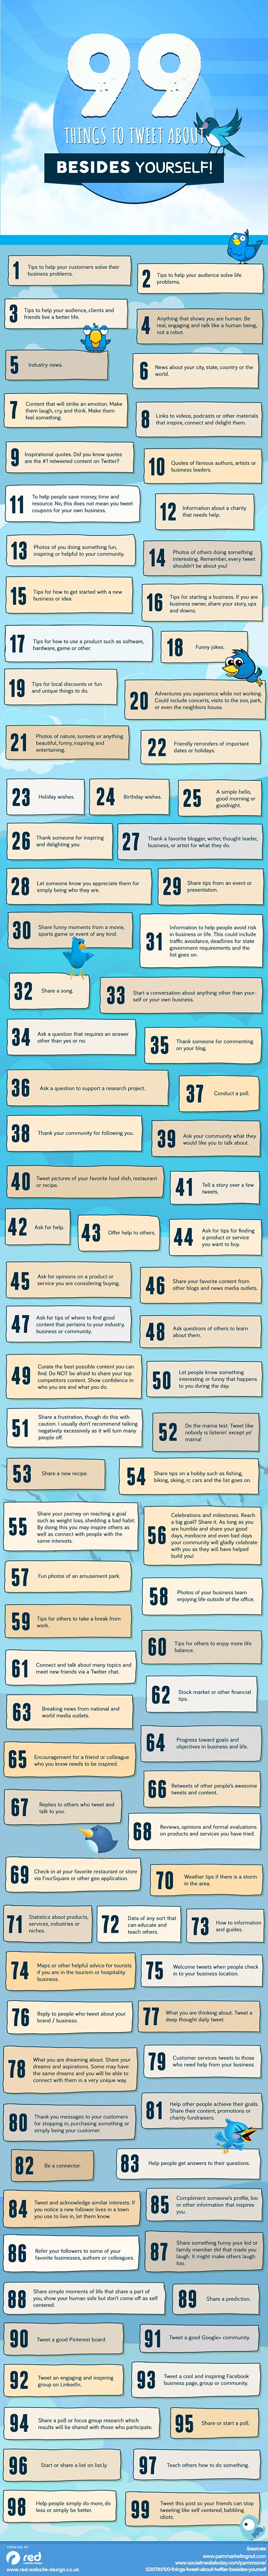 99 Things to Tweet About Besides Yourself #Twitter